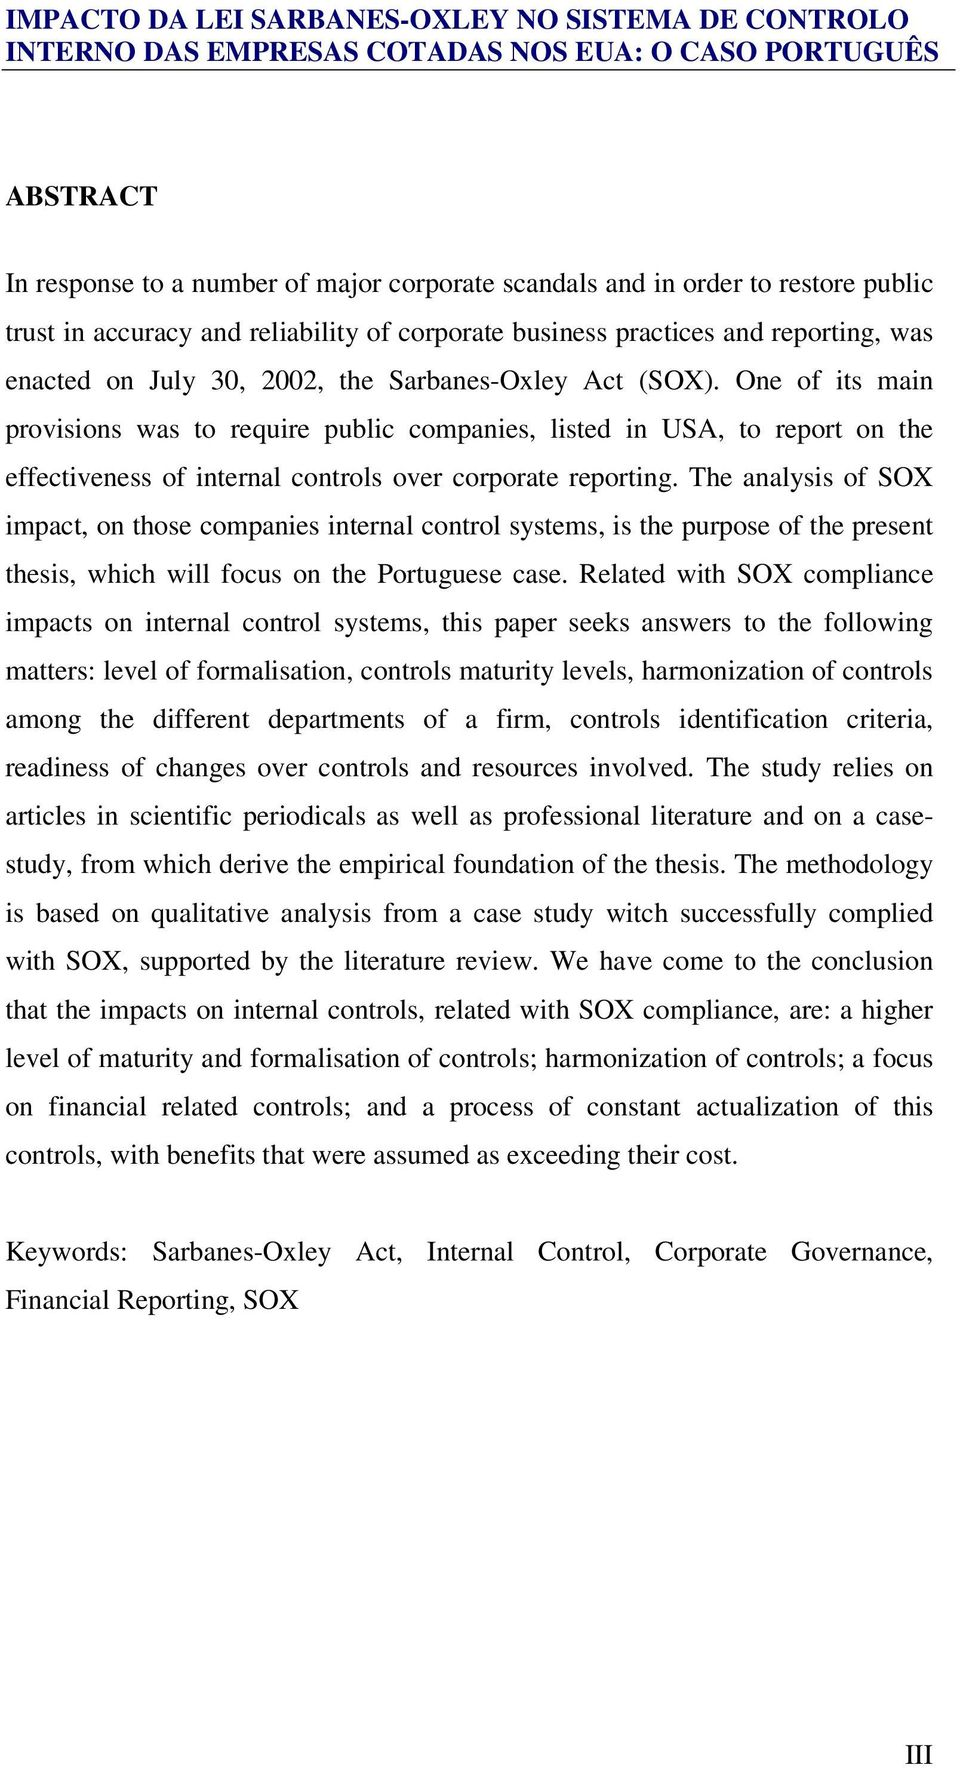 The analysis of SOX impact, on those companies internal control systems, is the purpose of the present thesis, which will focus on the Portuguese case.